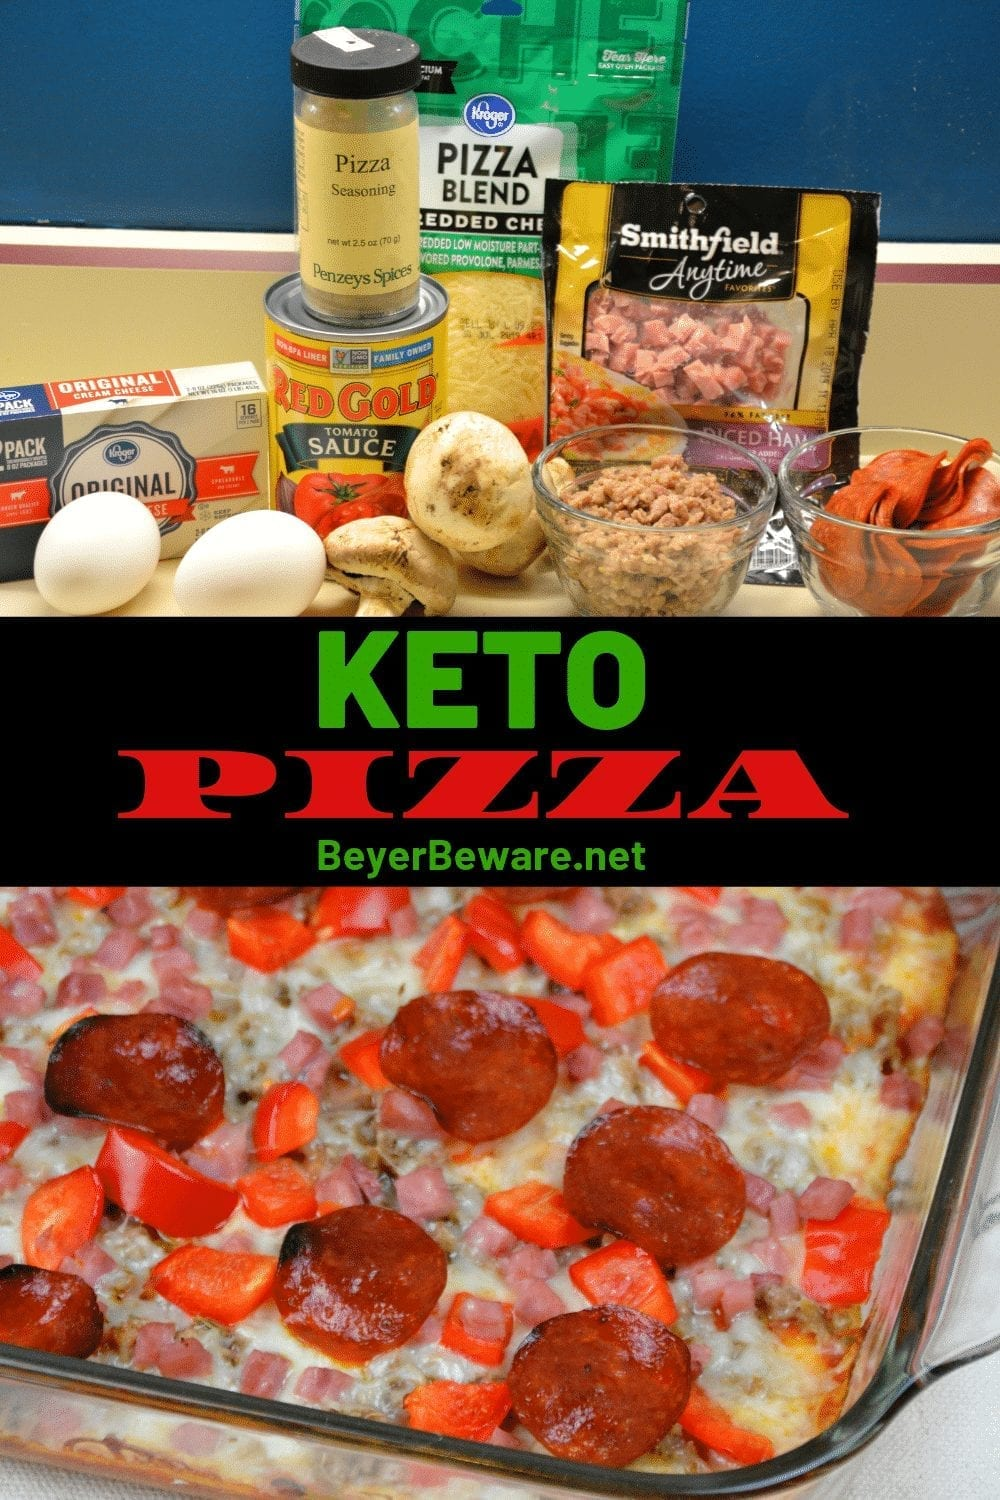 Keto pizza made with a cream cheese crust and topped with a thin layer of tomato sauce, your favorite toppings, and cheese. #Keto #LowCarb #Pizza #KetoPizza #LowCarbCrust